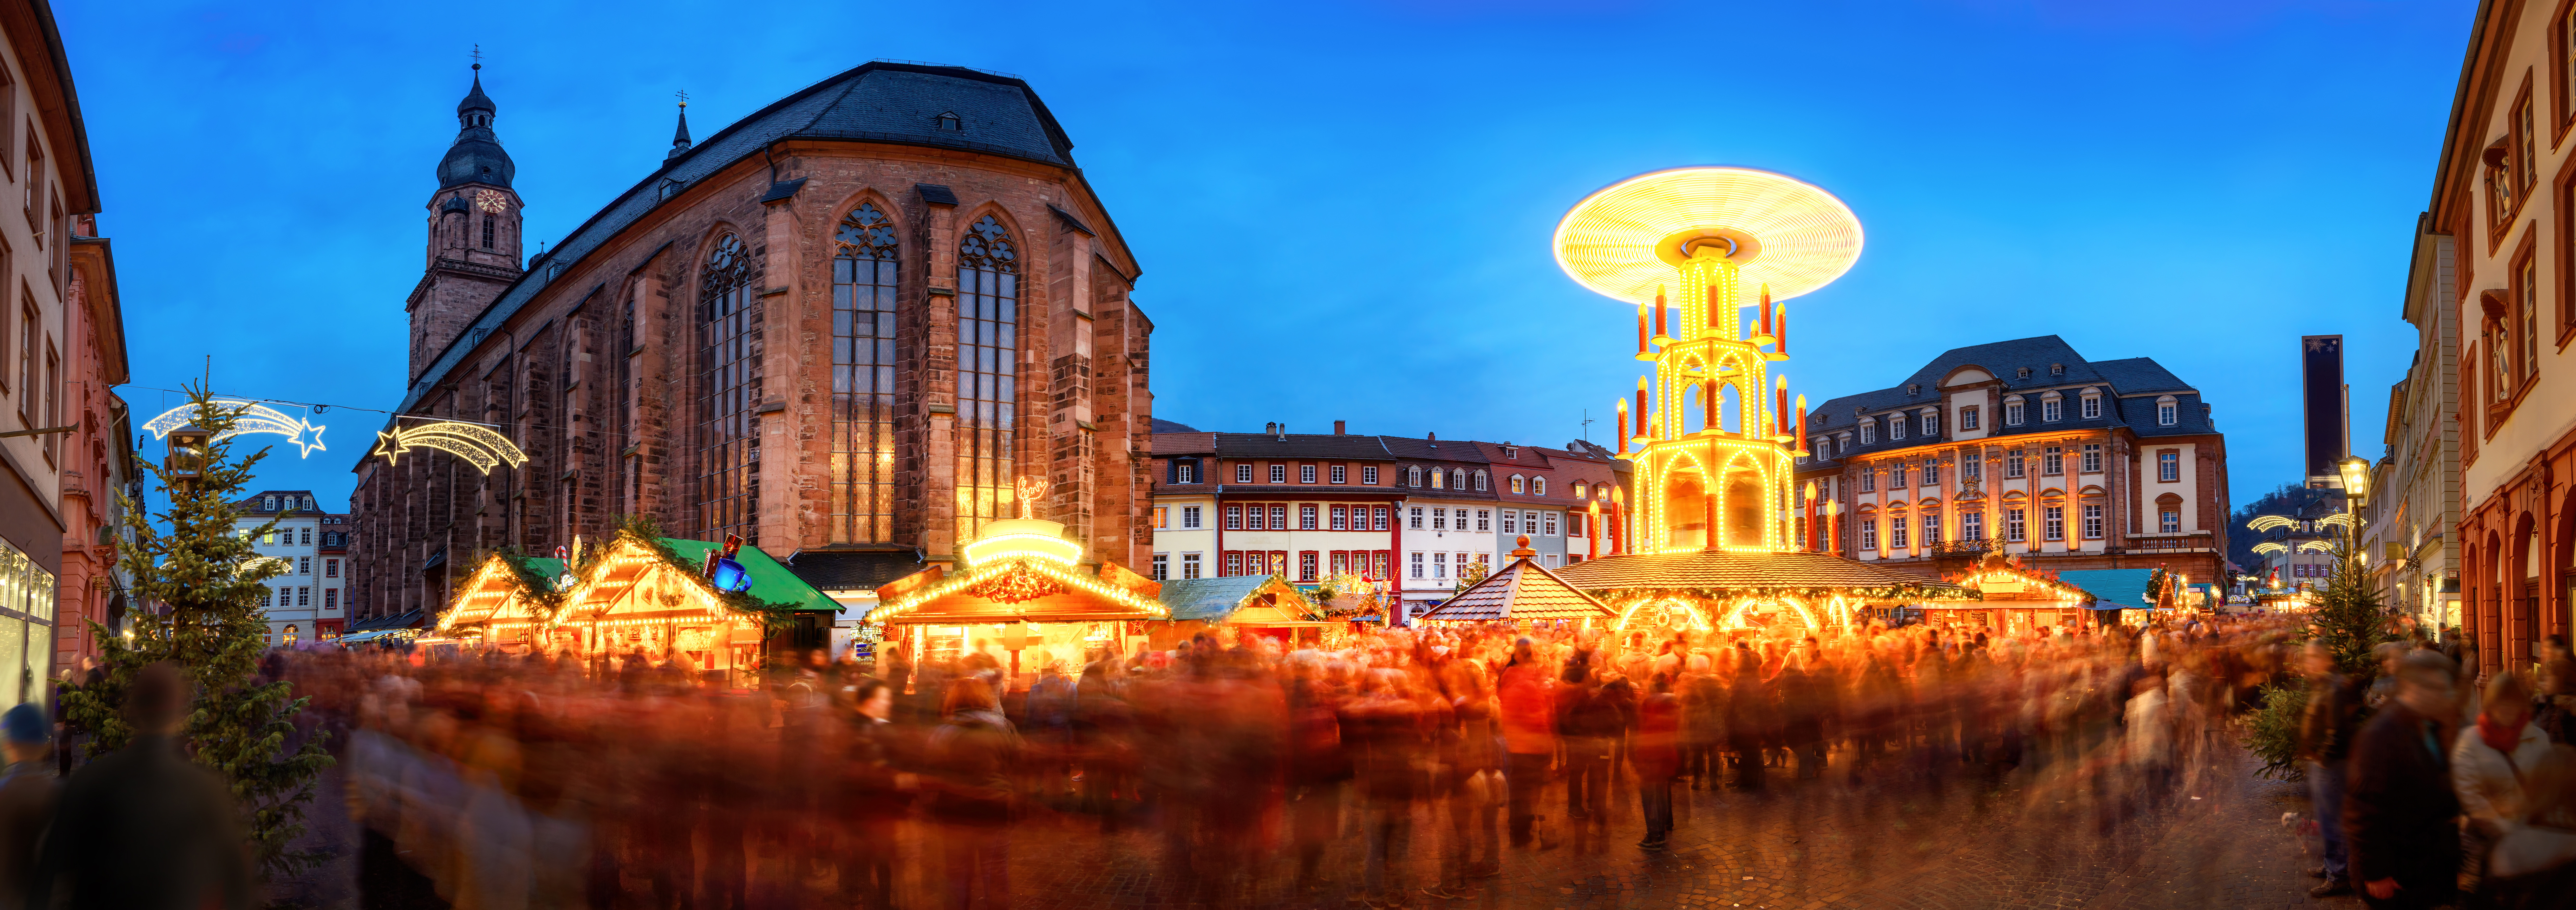 Chistmas-markets-on-the-Rhine.jpg#asset: